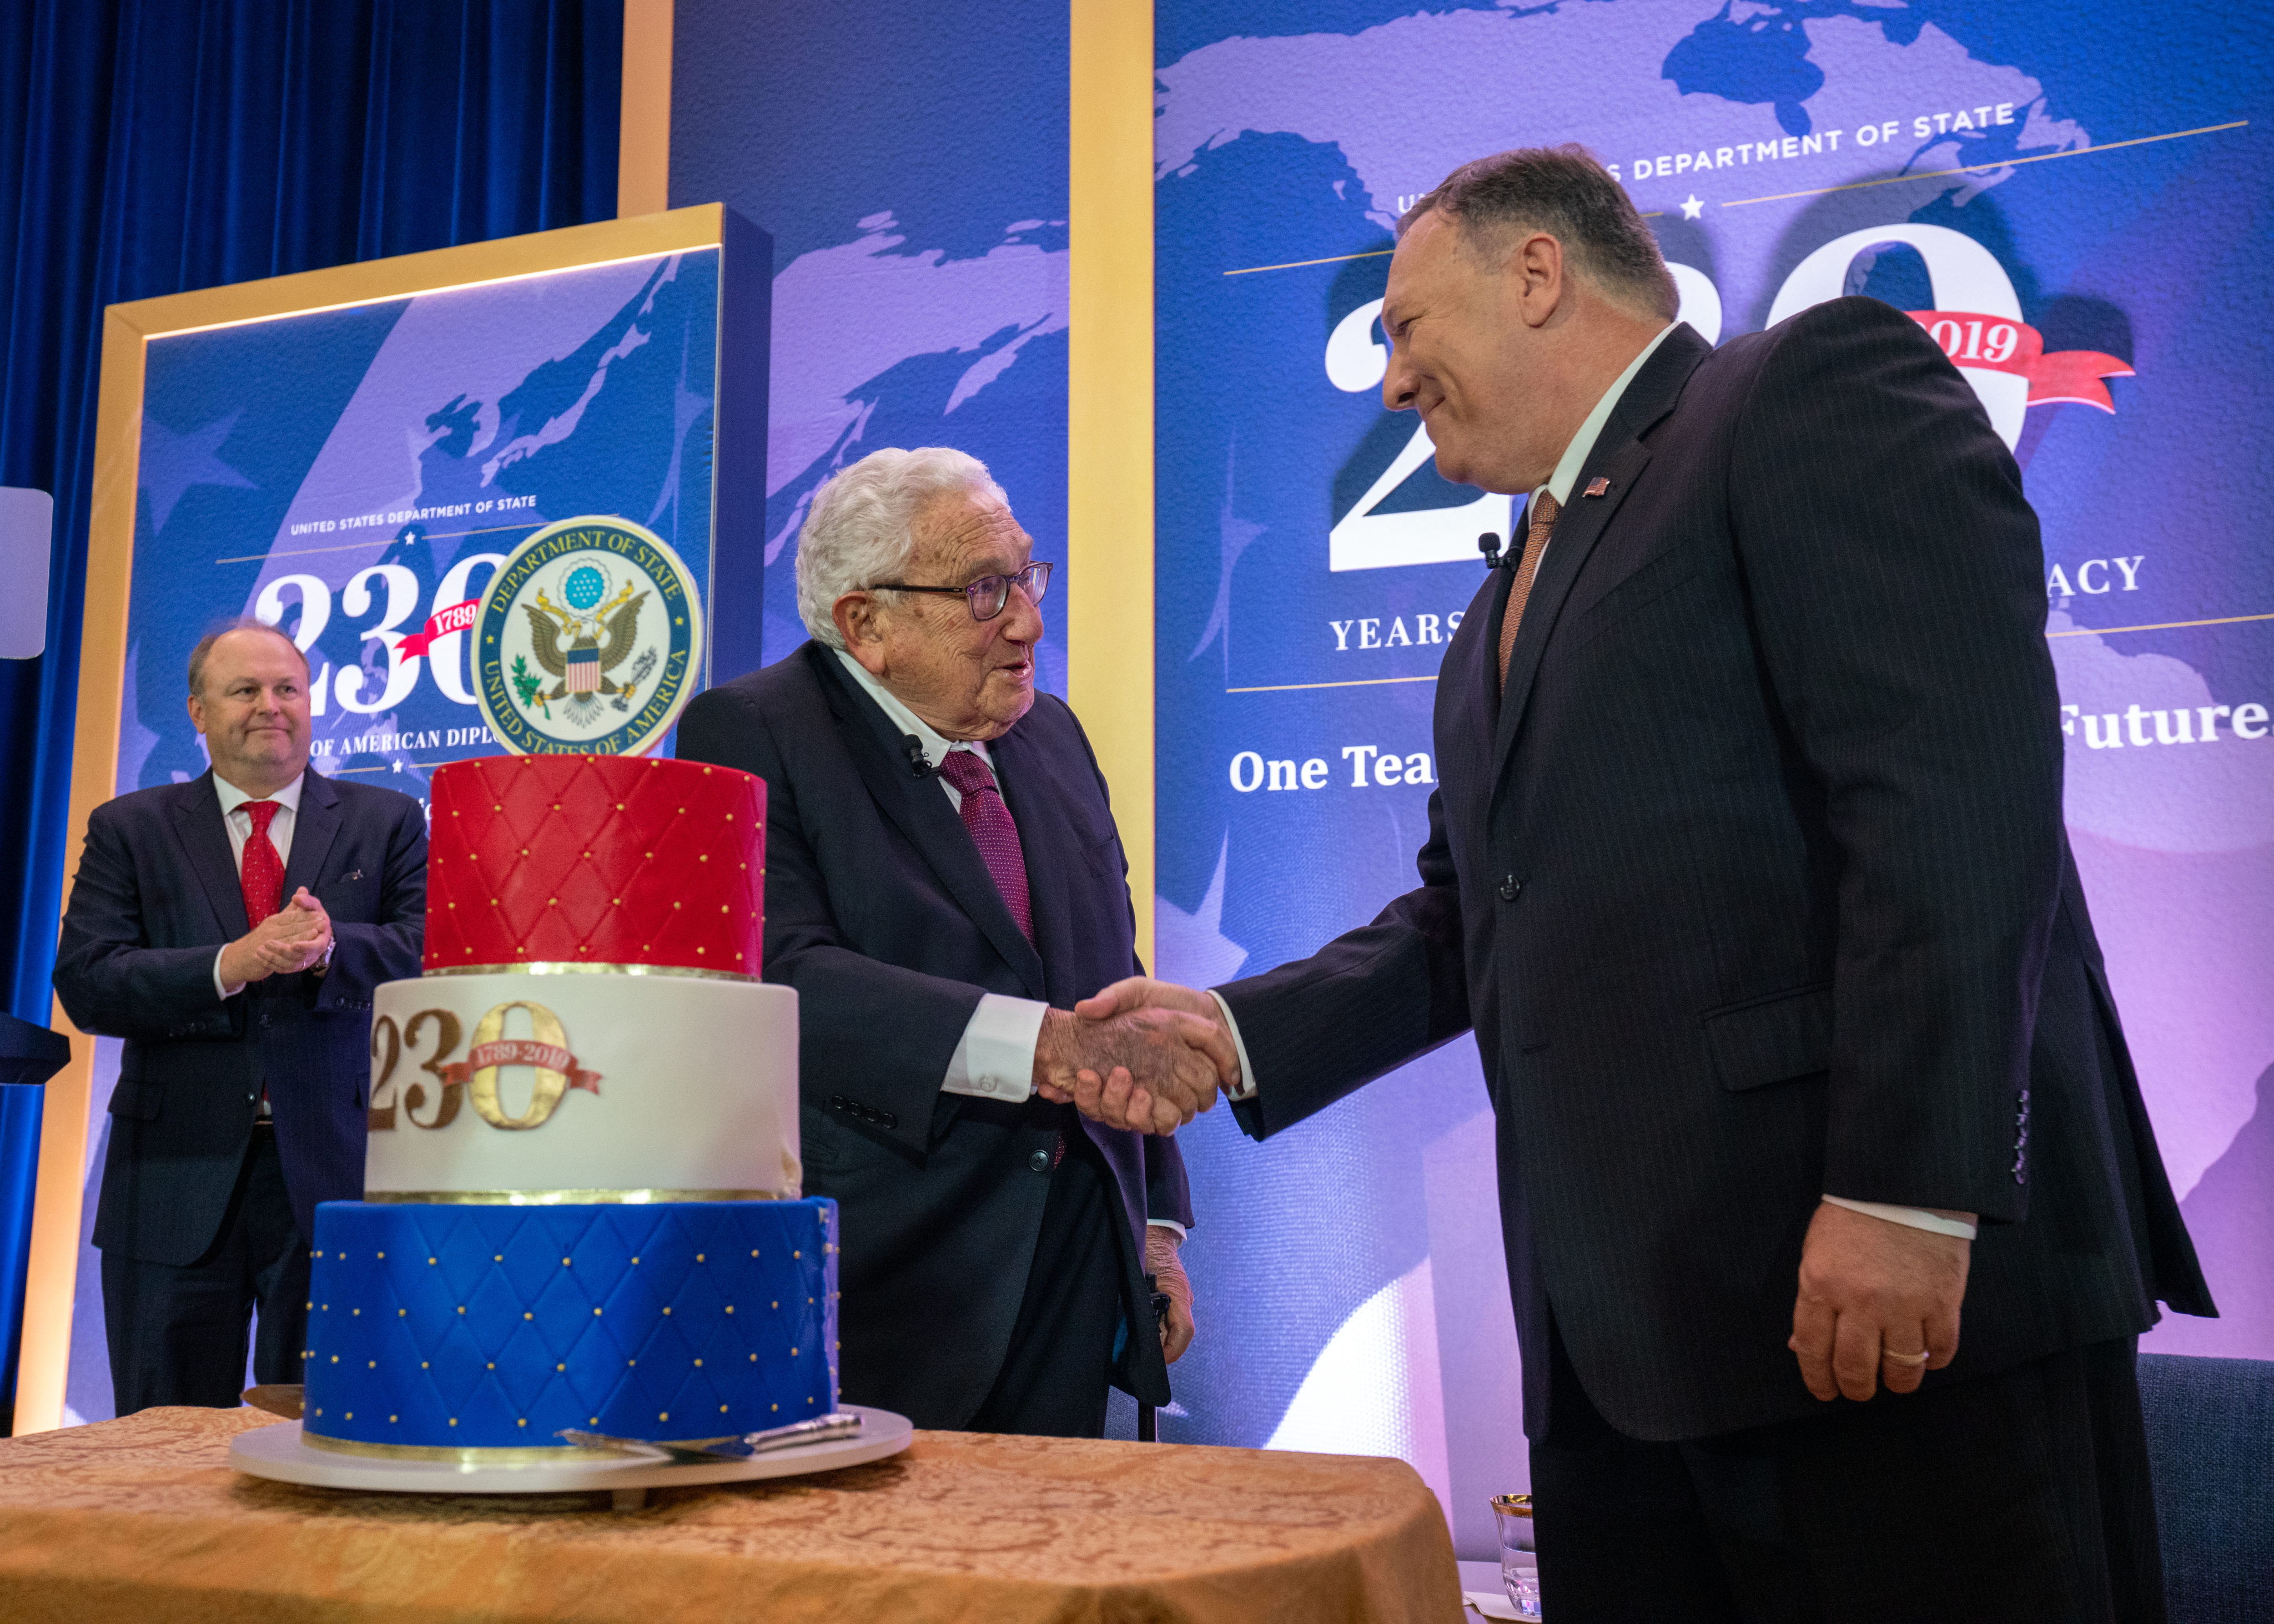 Pompeo rallies State Department workforce on 'professional ethos' as agency turns 230 | Federal News Network